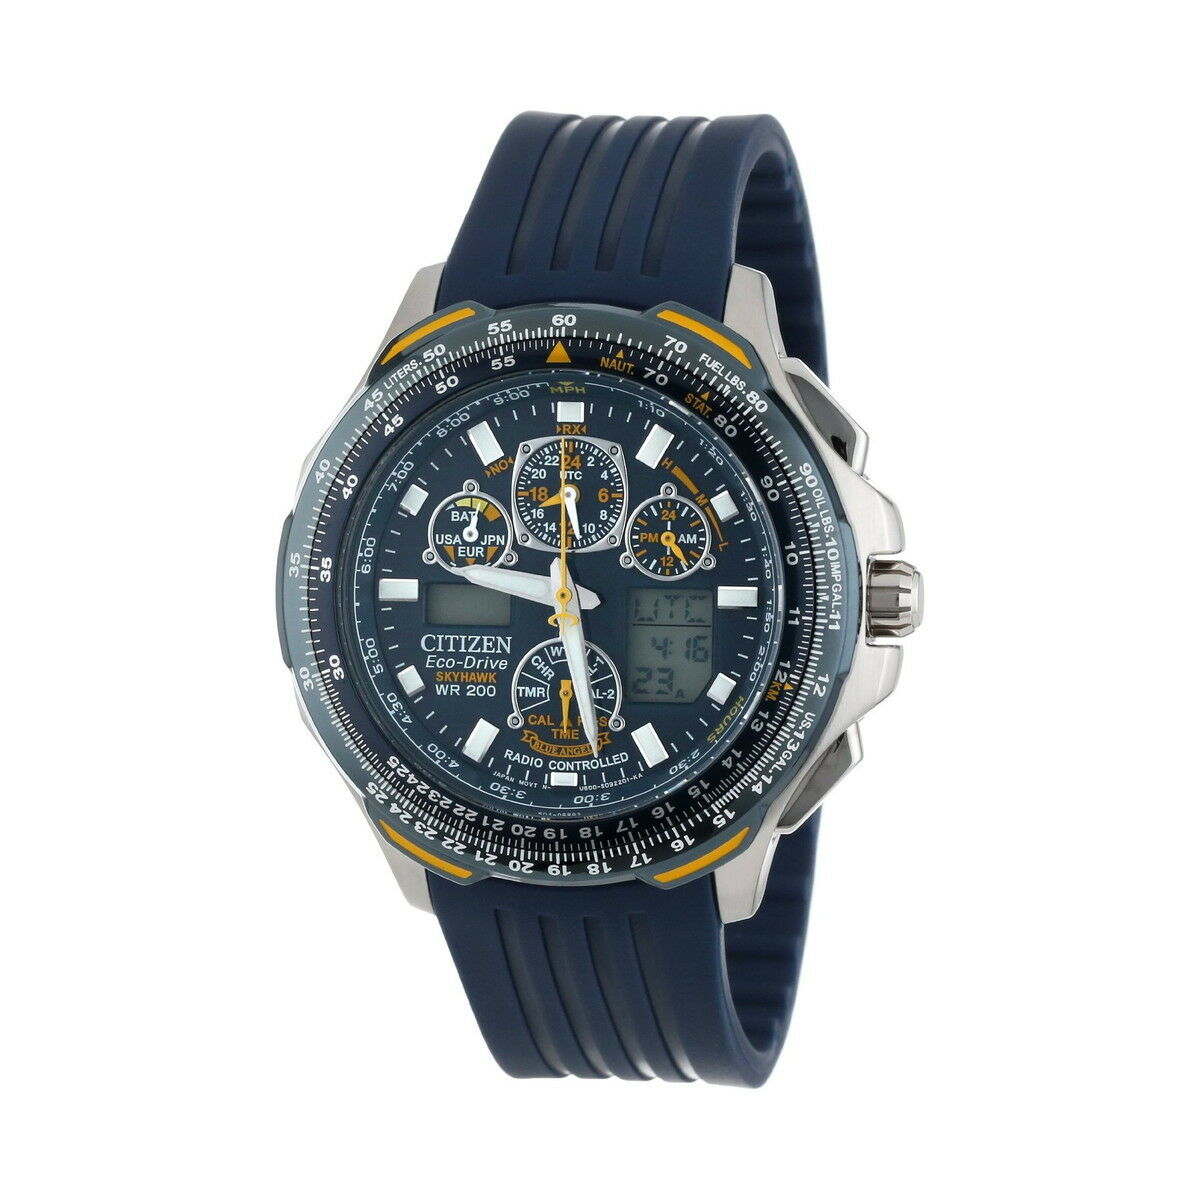 $299.99 - Citizen Eco-Drive Men's JY0064-00L Blue Angels Skyhawk Atomic Watch